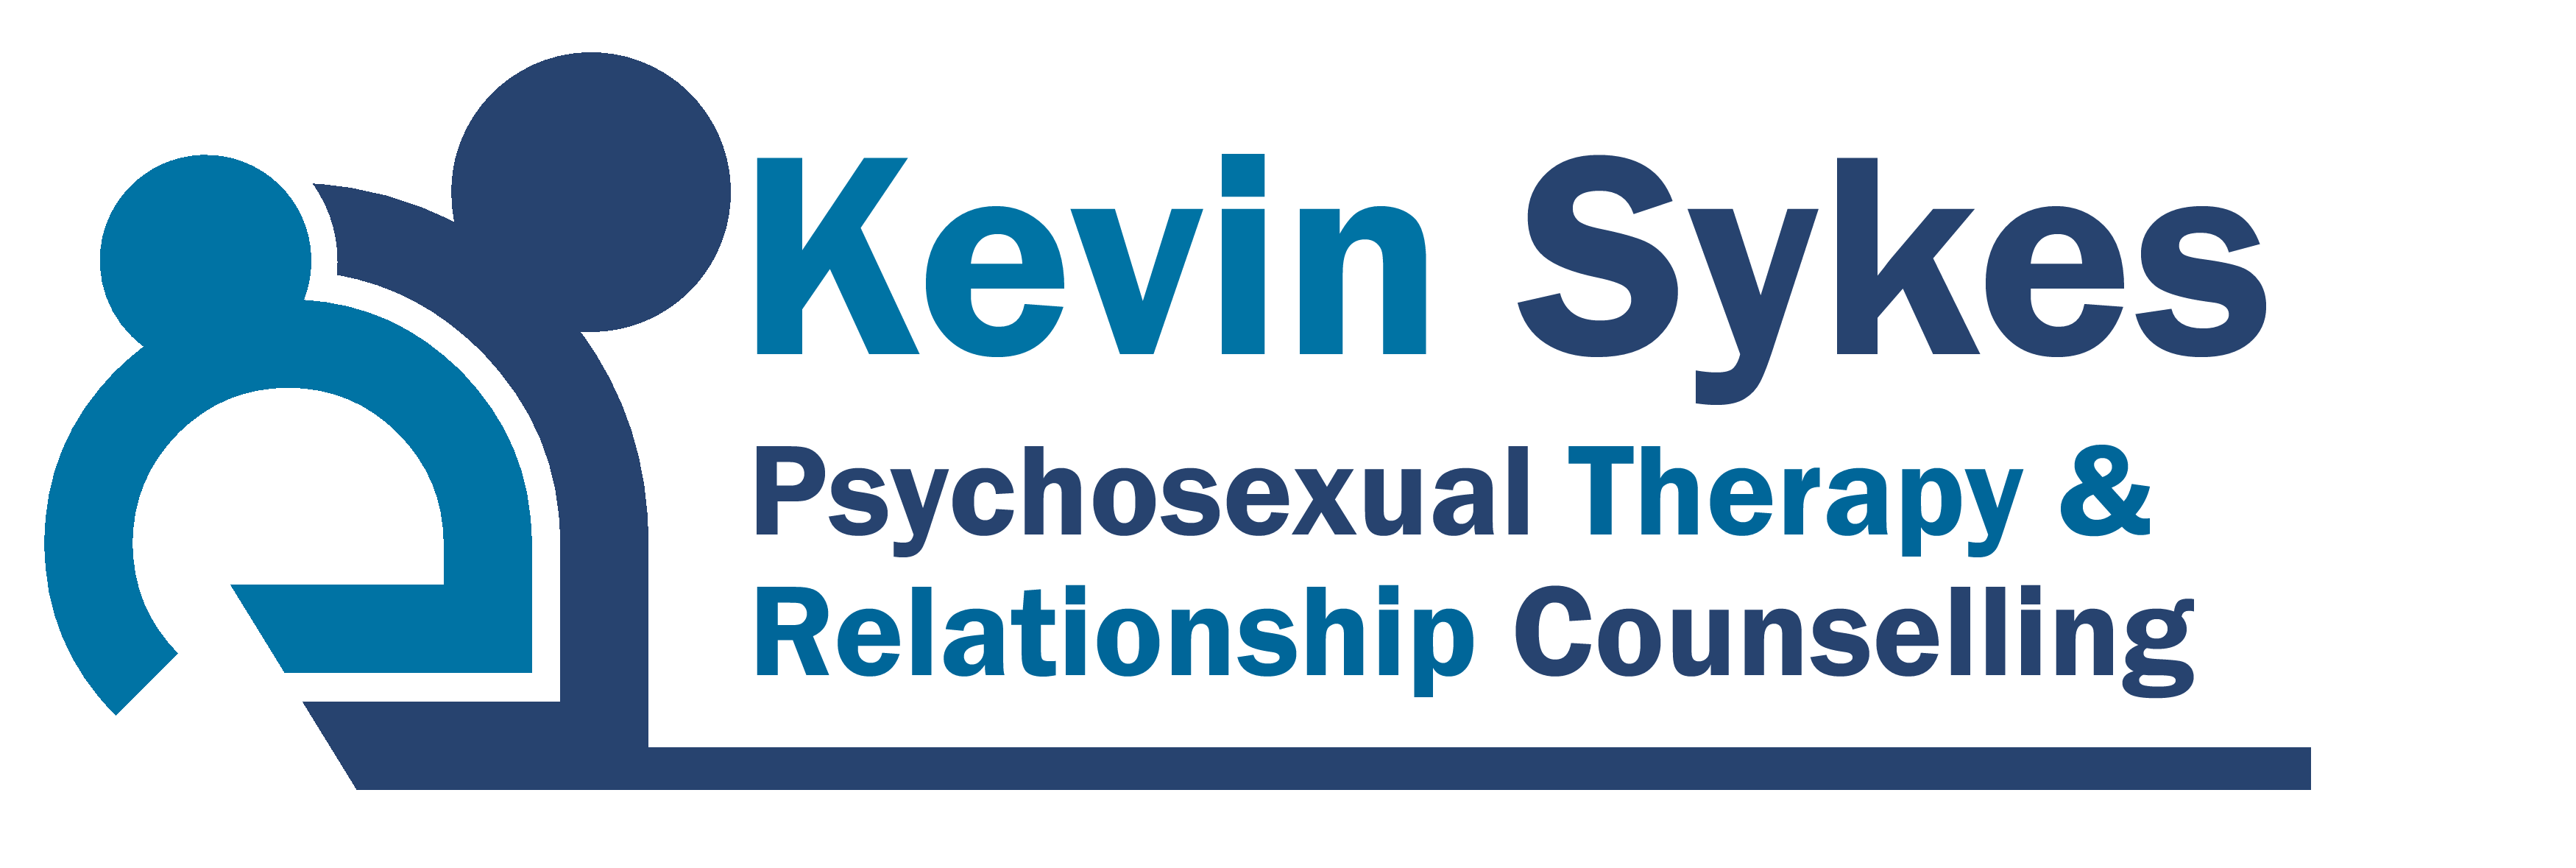 Kevin Sykes - Sex Therapy Leeds